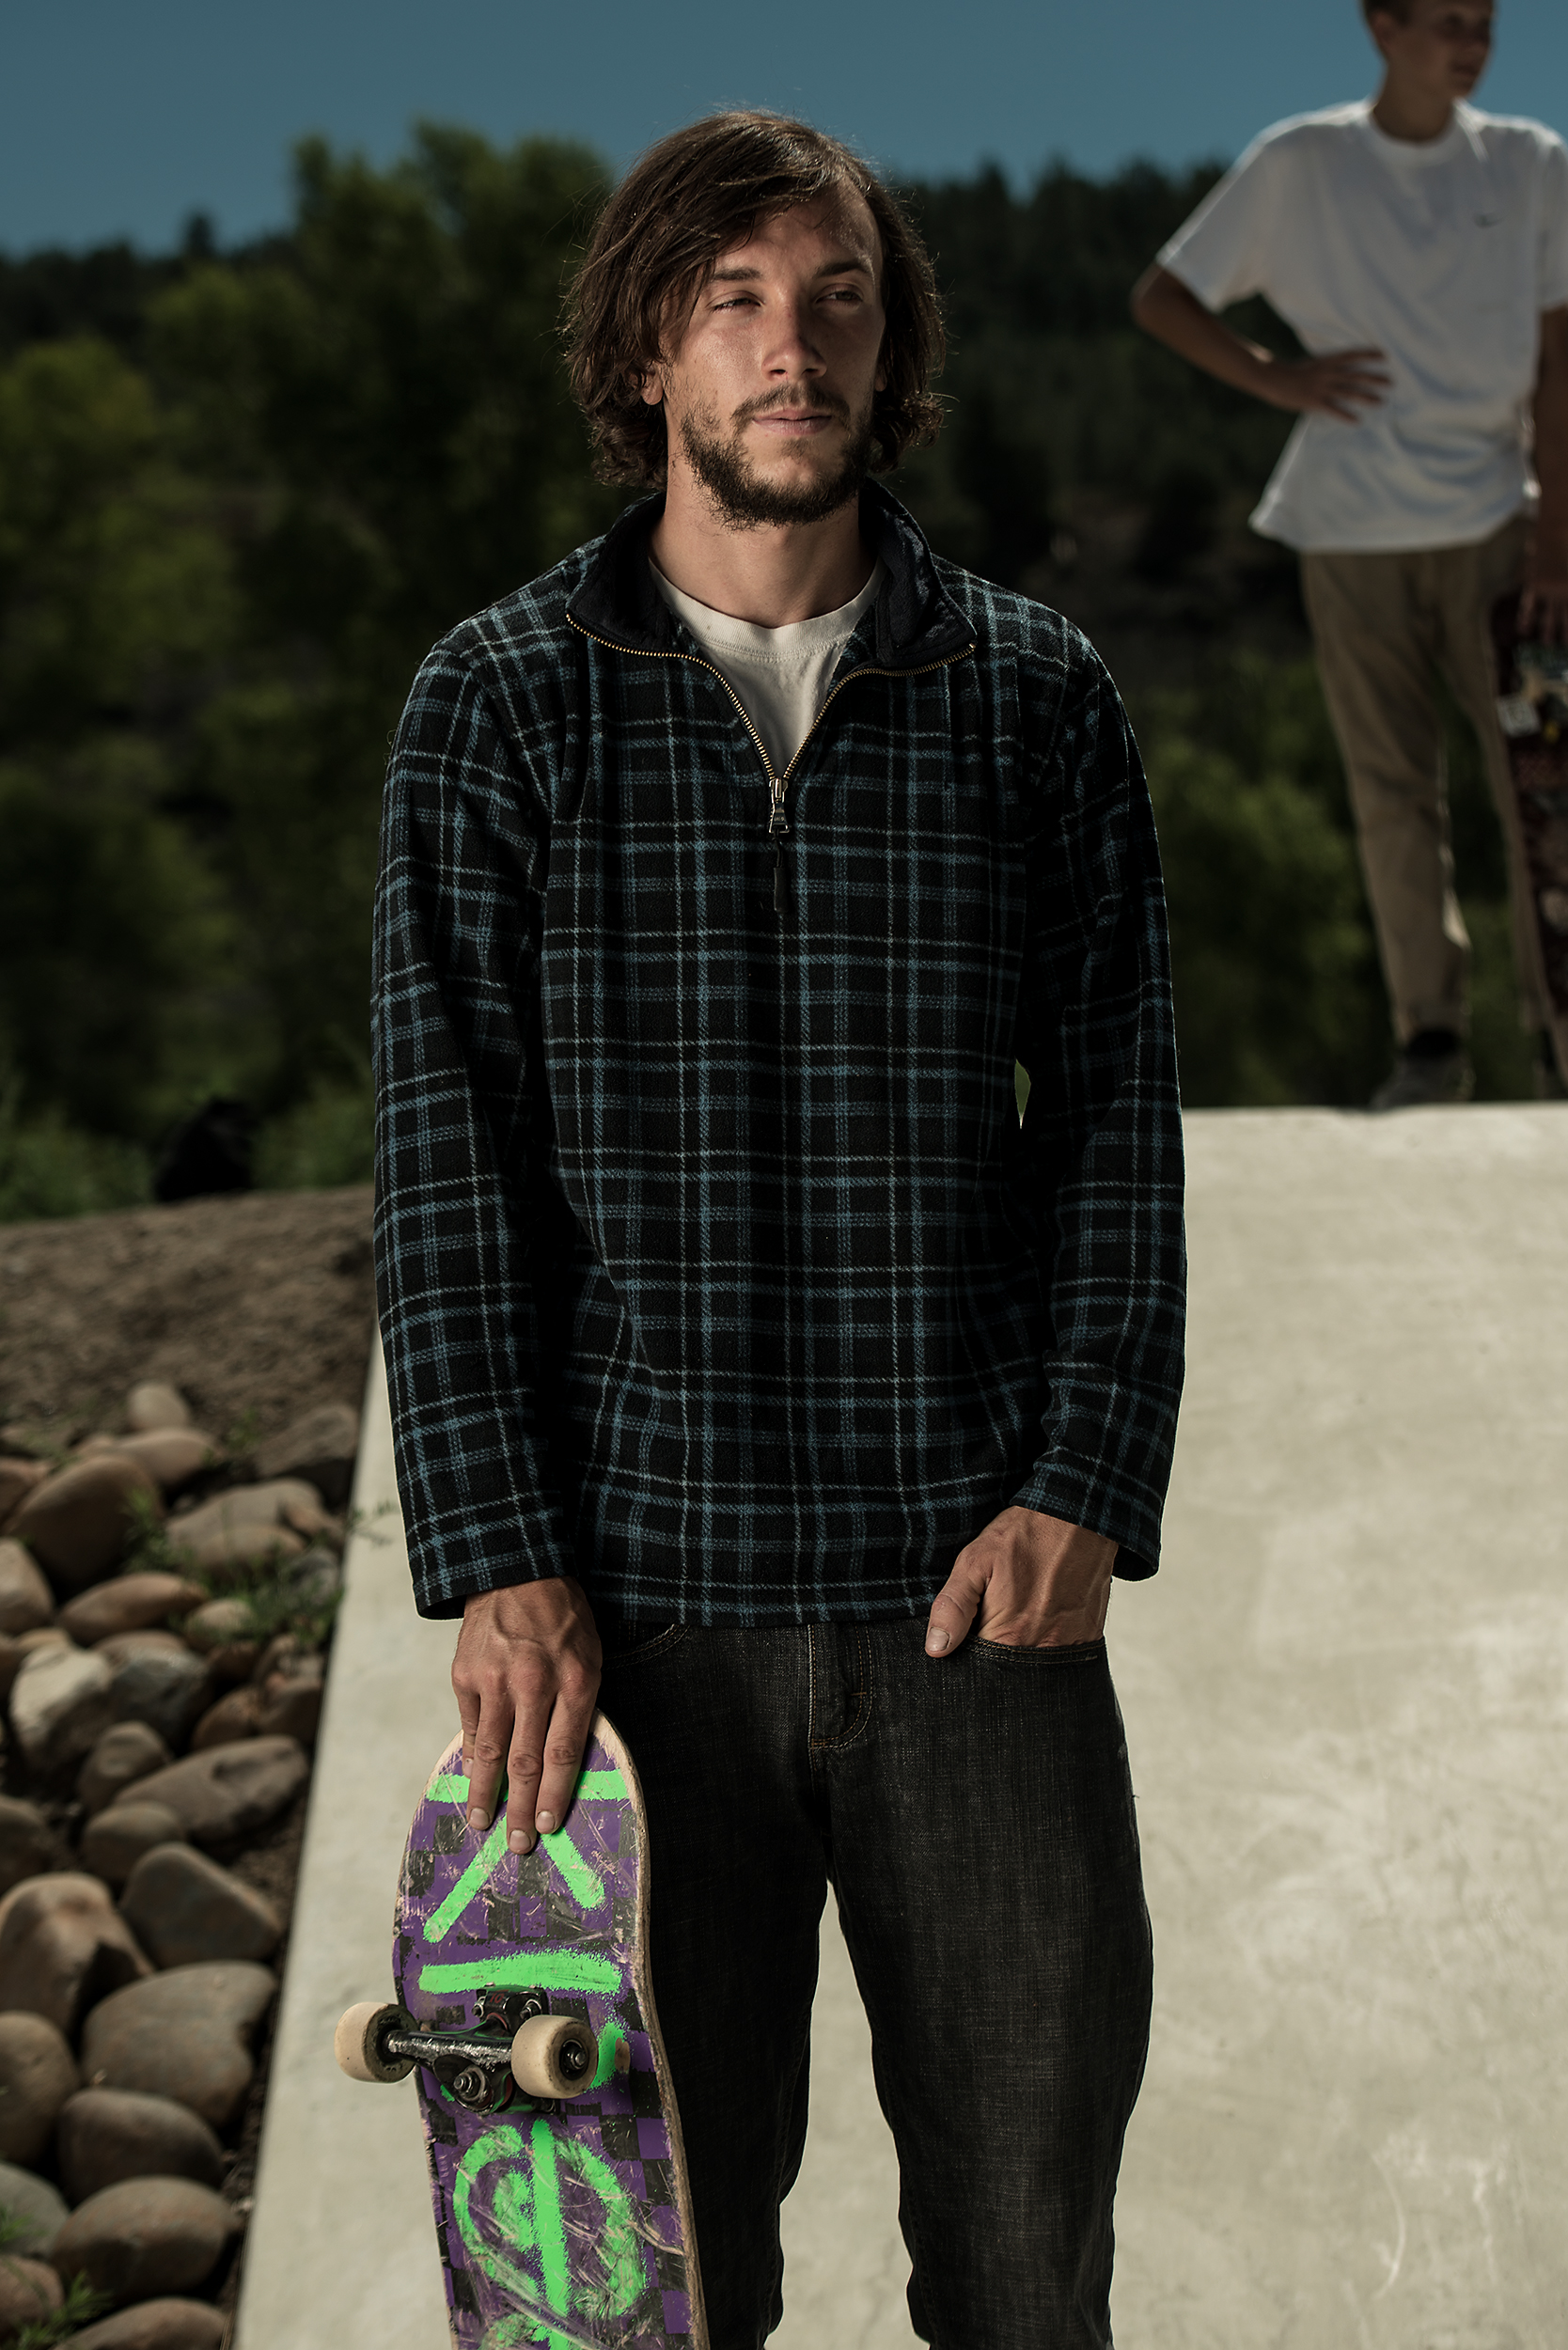 A skateboarder pauses during a small competition for a portrait